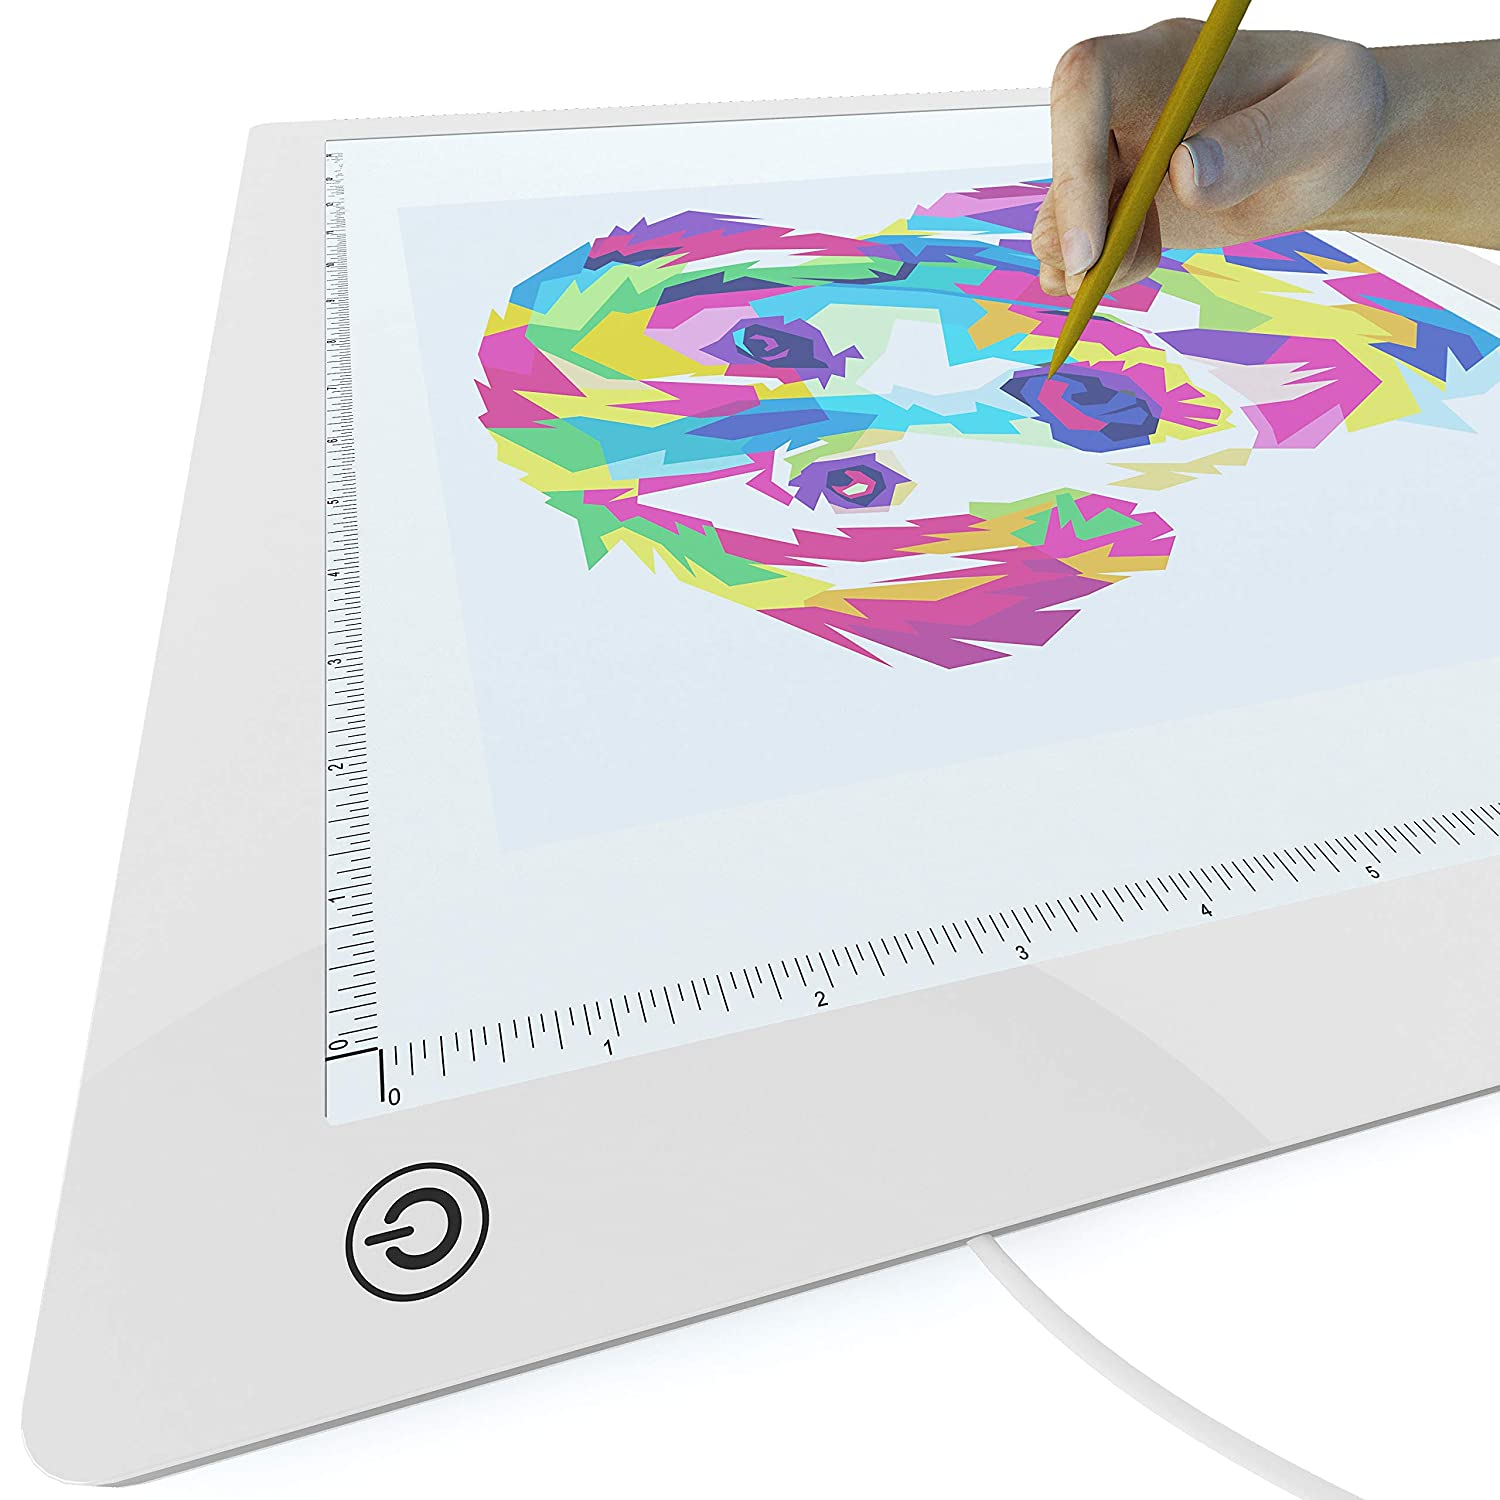 Large Grid-Free A3 Light Pad Mid /& Low Brightness Advanced Filter to Prevent Eye Fatigue Hi Picture//Perfect Best Light Box for Diamond Painting /& Tracing 17x14 Tracing Paper Included